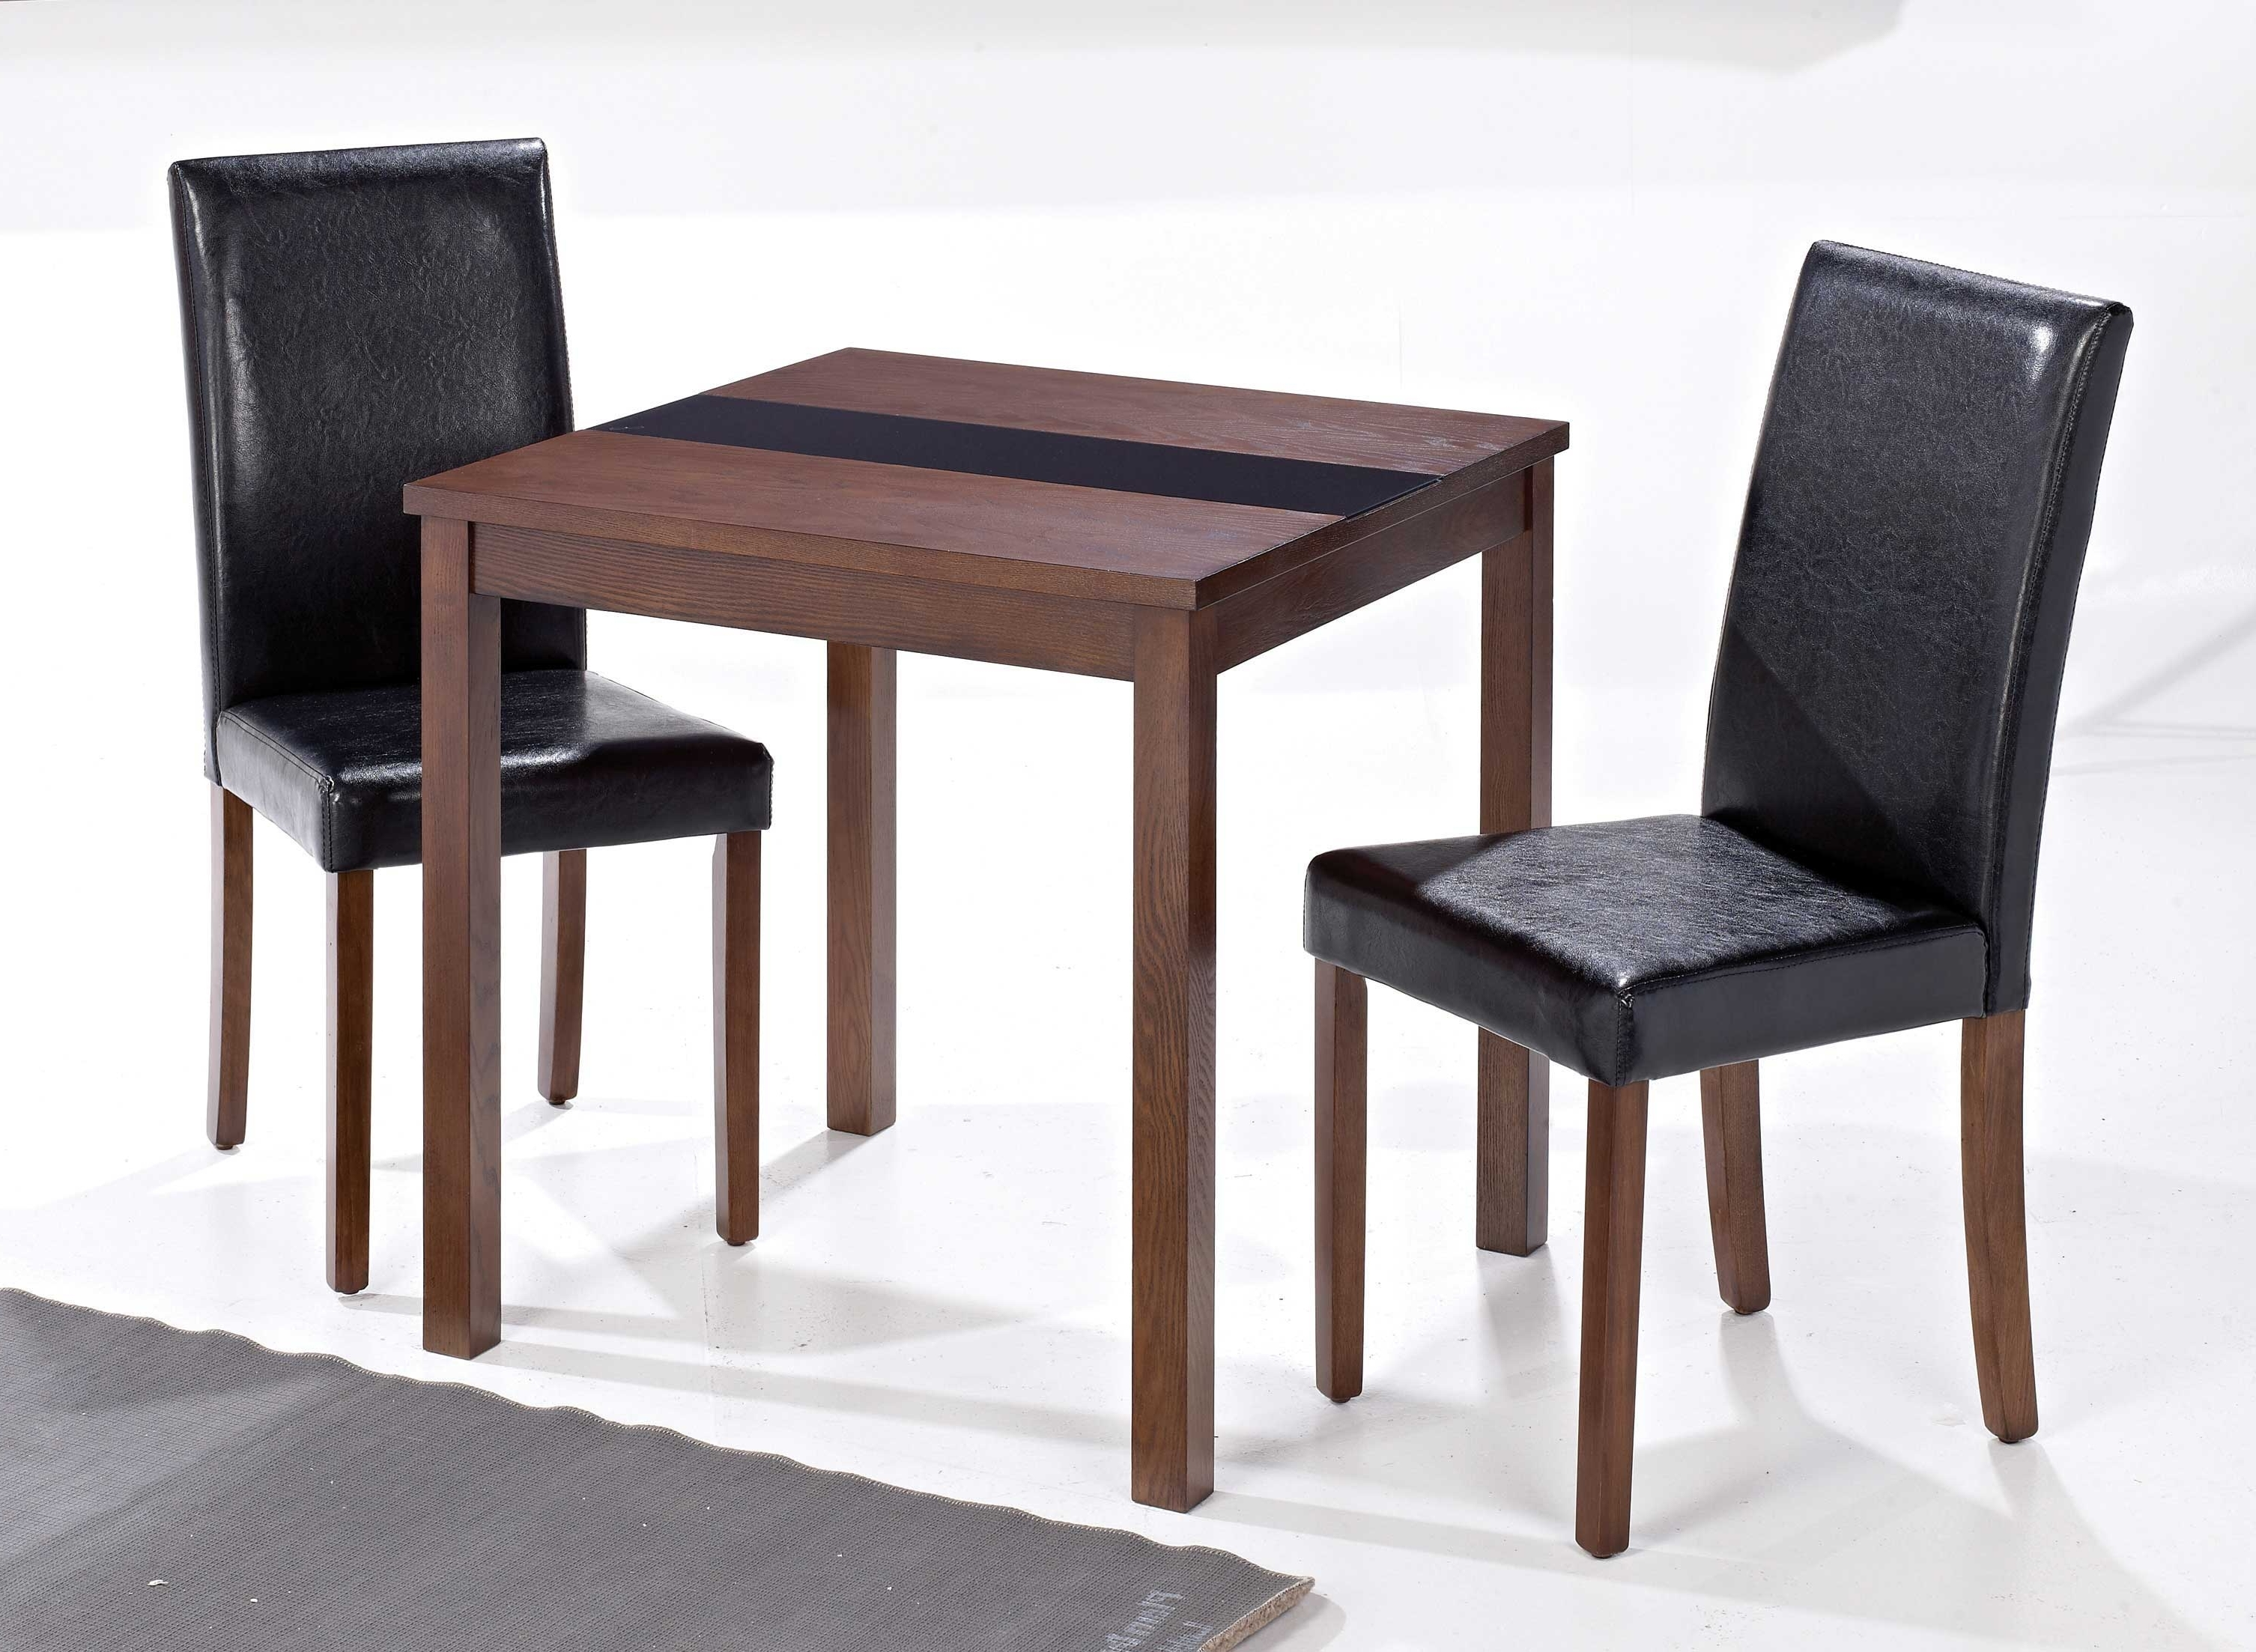 Dining Table Set 2 Seater • Table Setting Design With Most Up To Date Two Seater Dining Tables (View 3 of 25)